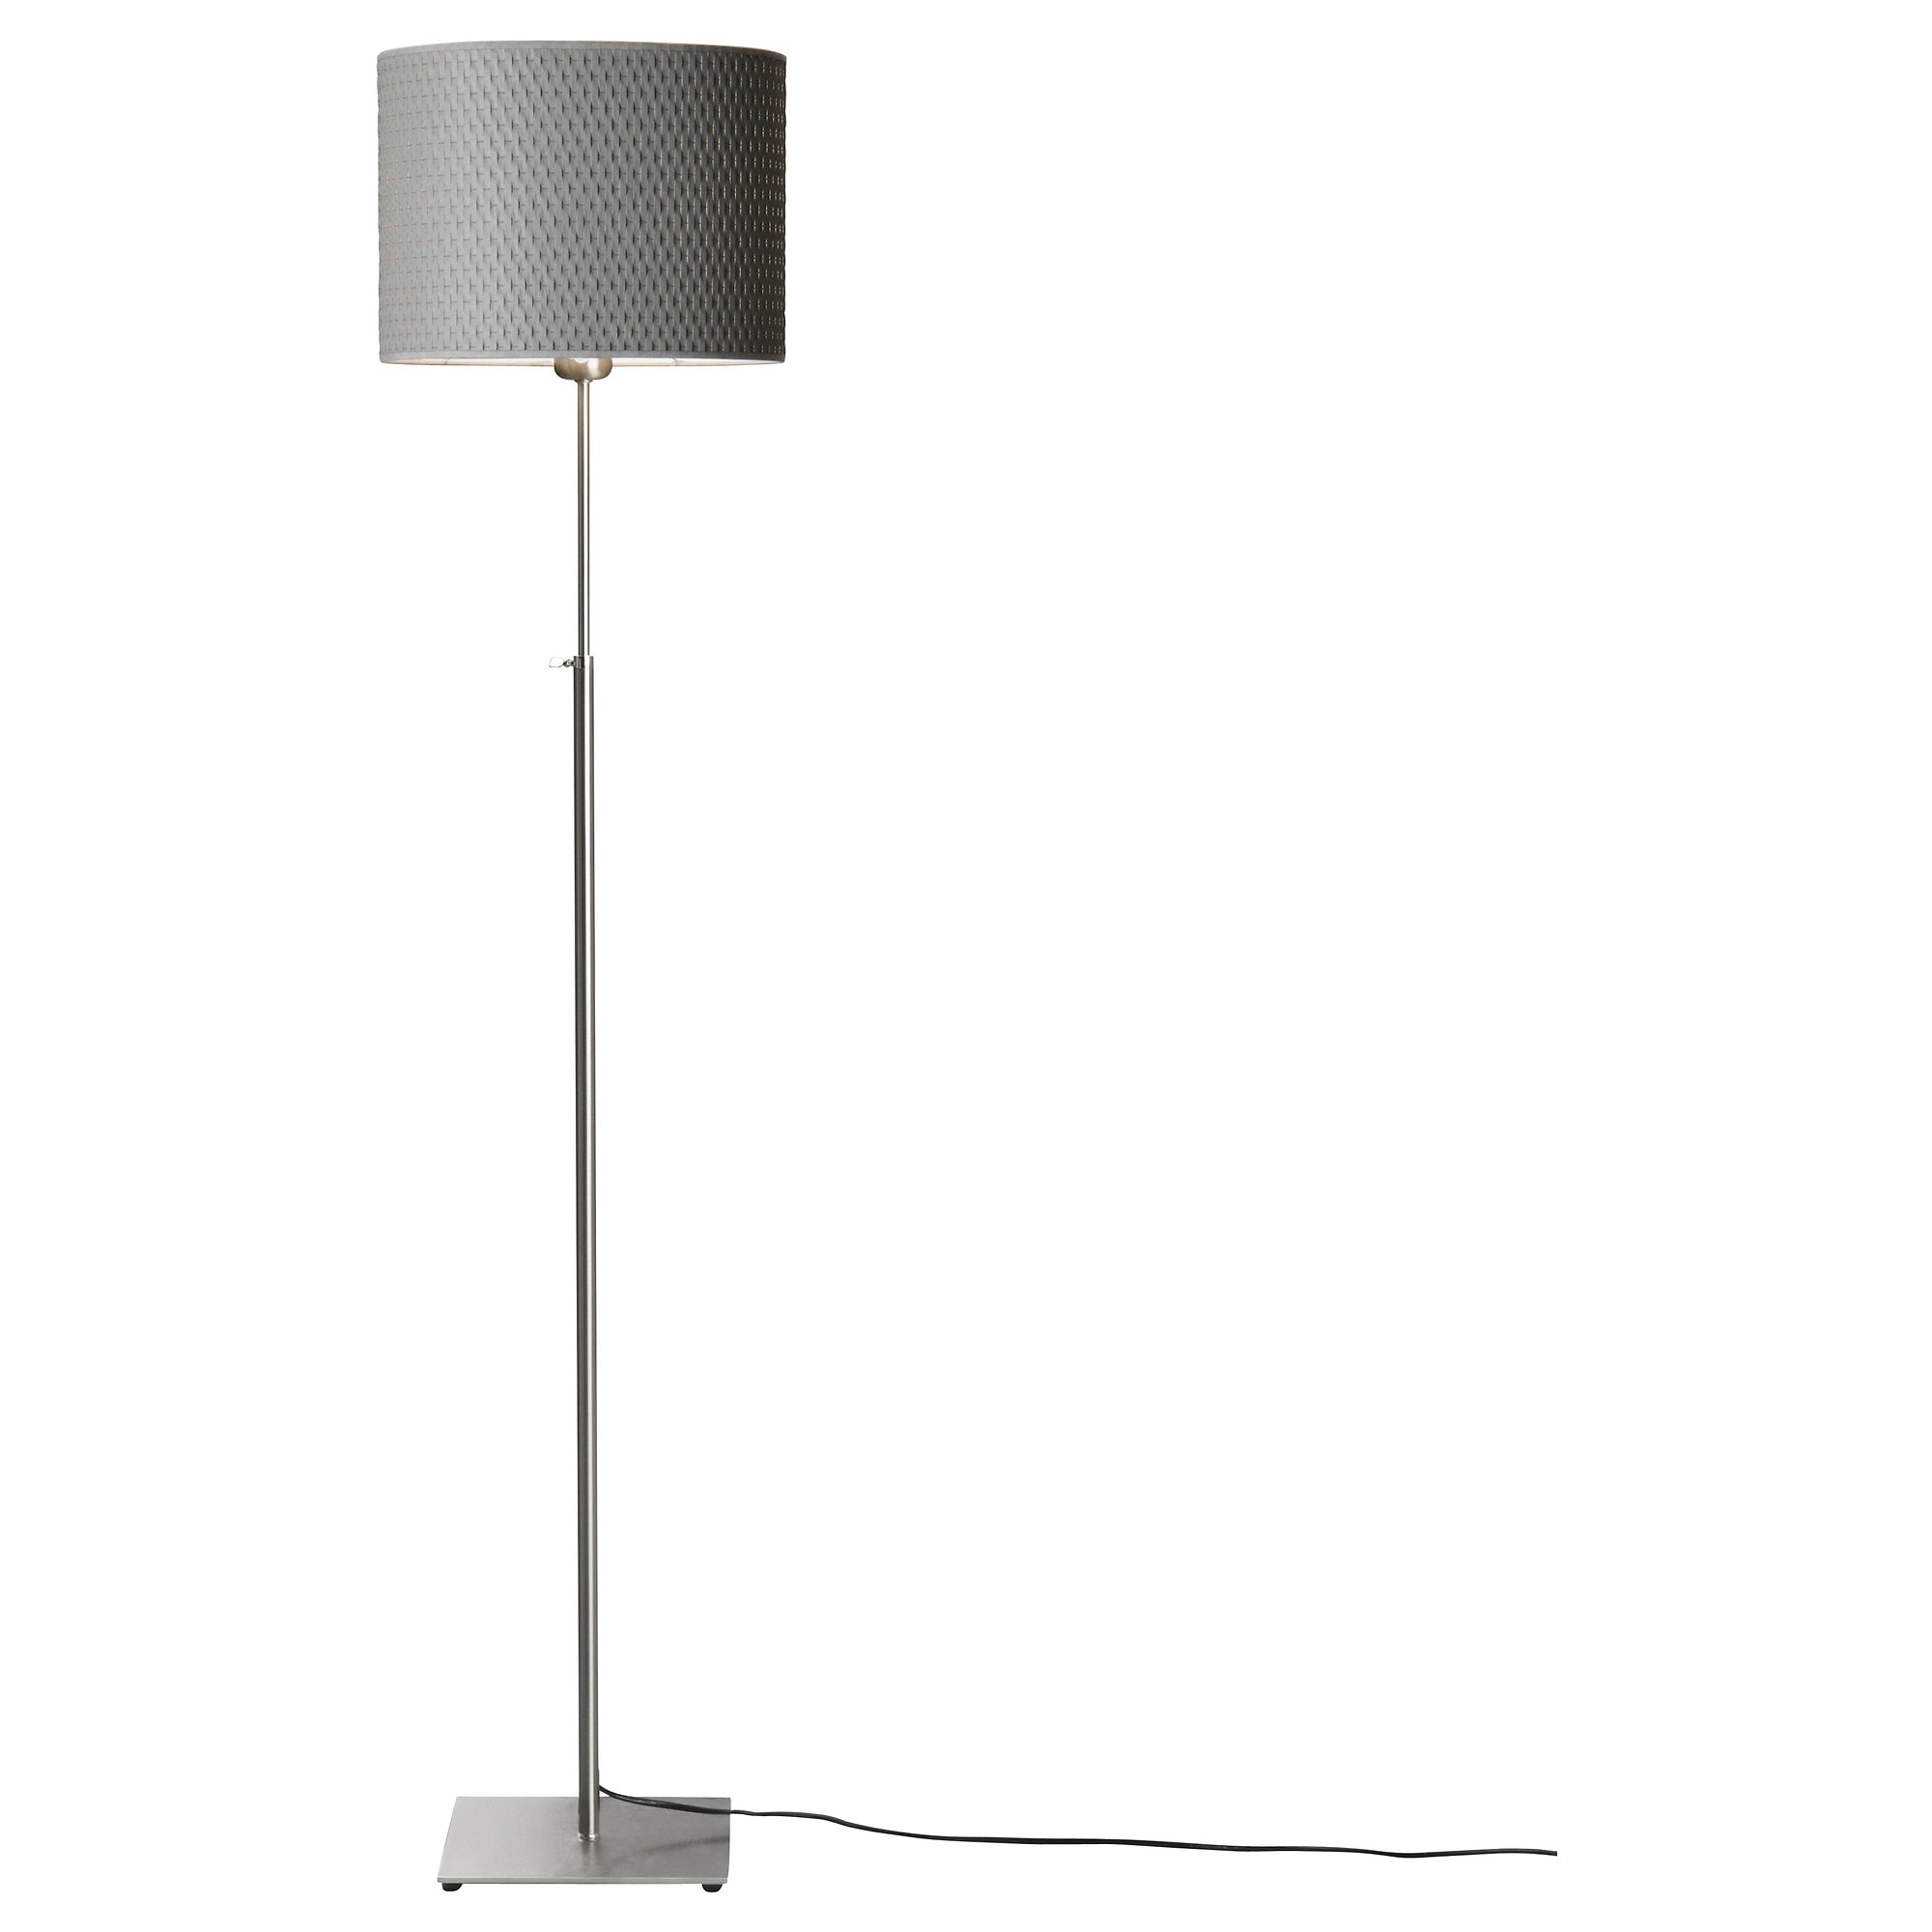 "AL""NG Floor lamp IKEA"